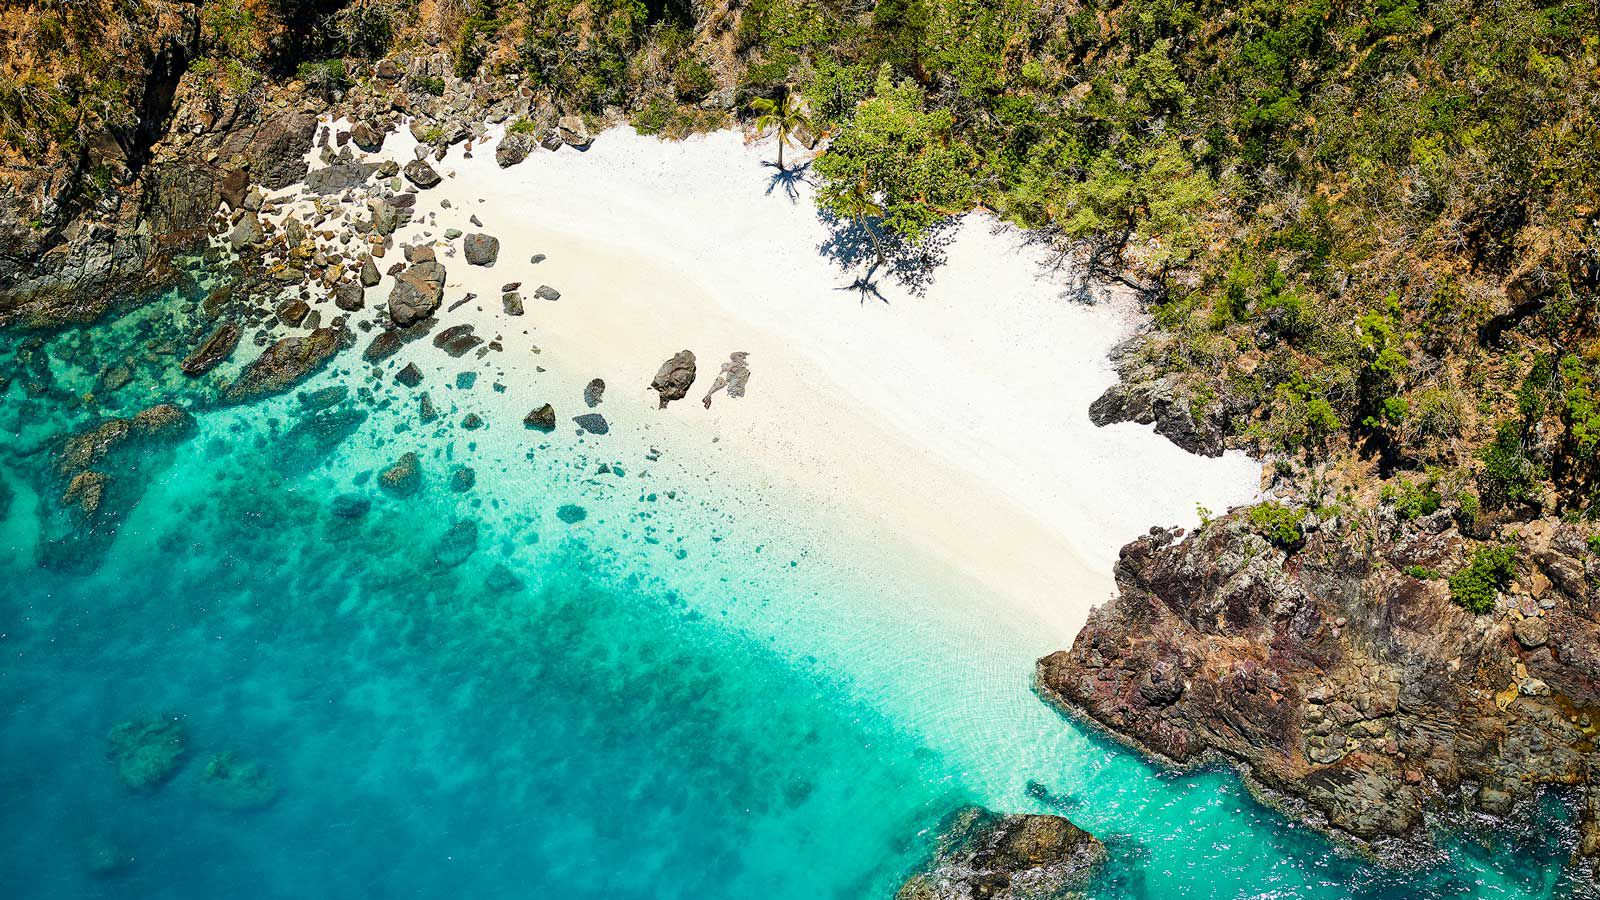 Aerial view of Lovers Cove on Daydream Island in Australia